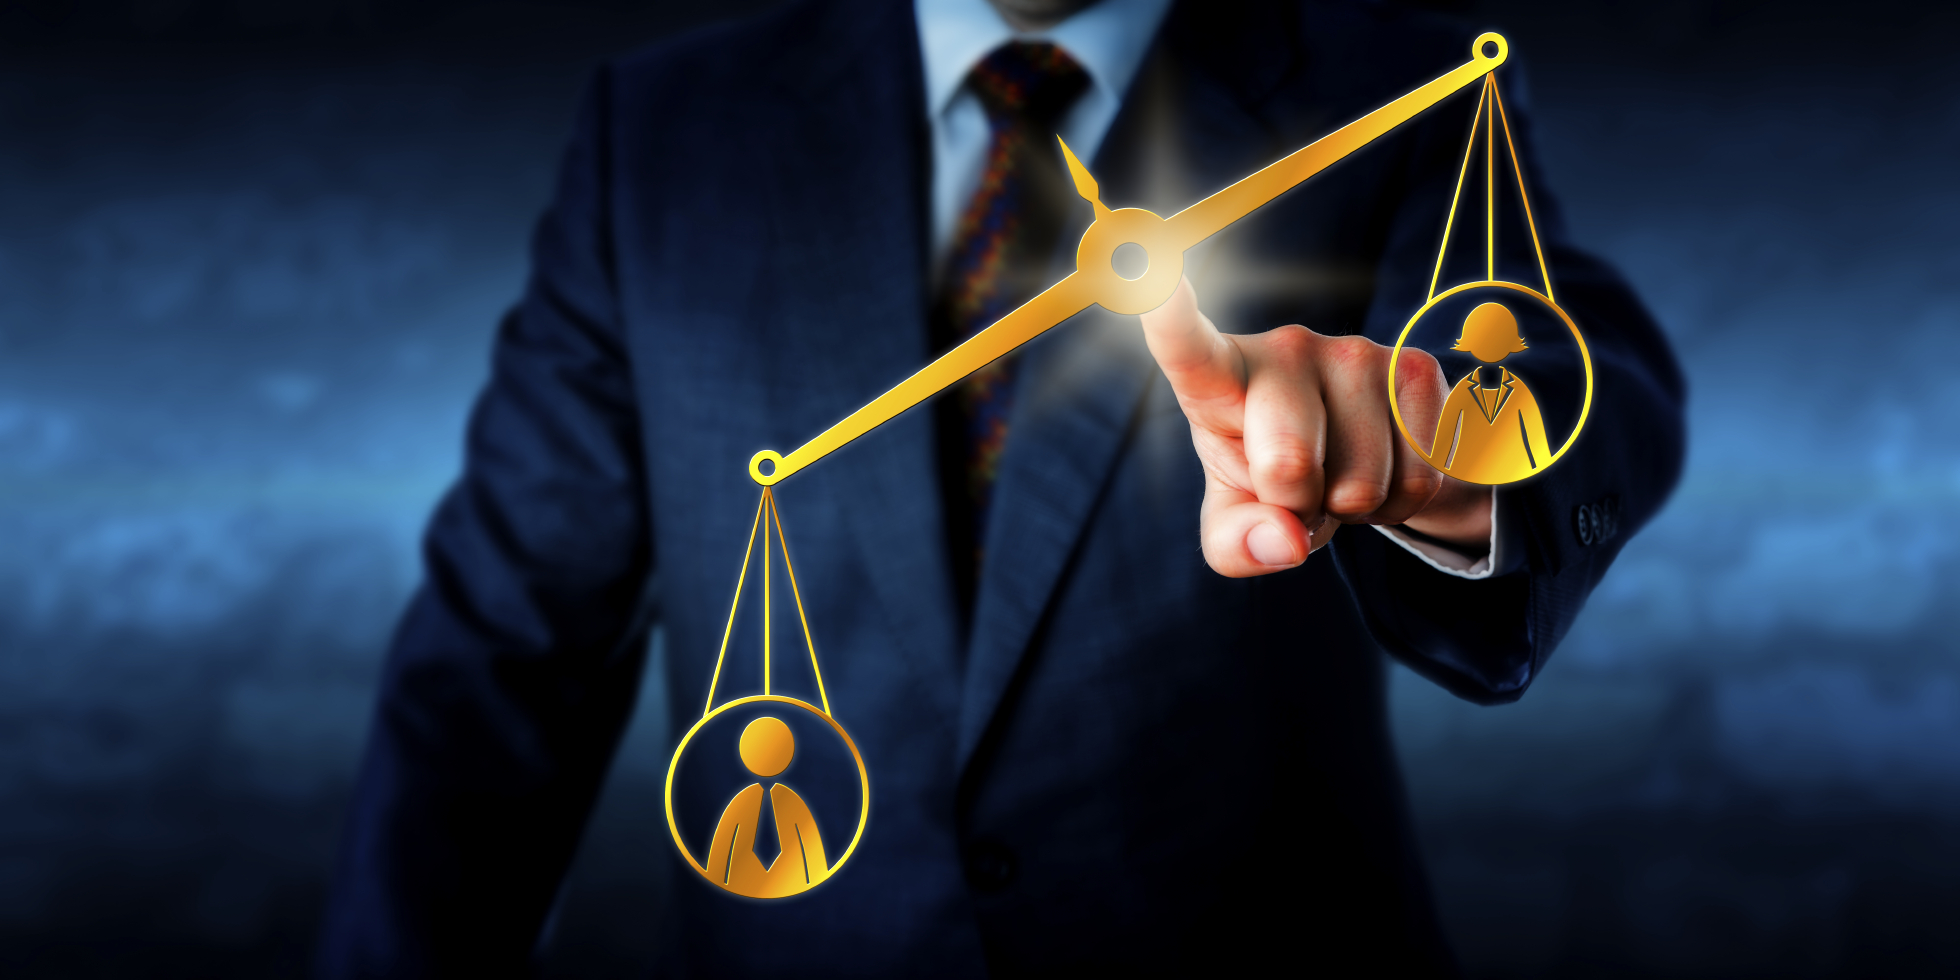 6 Reasons For Gender Differences At The Top Of The Legal